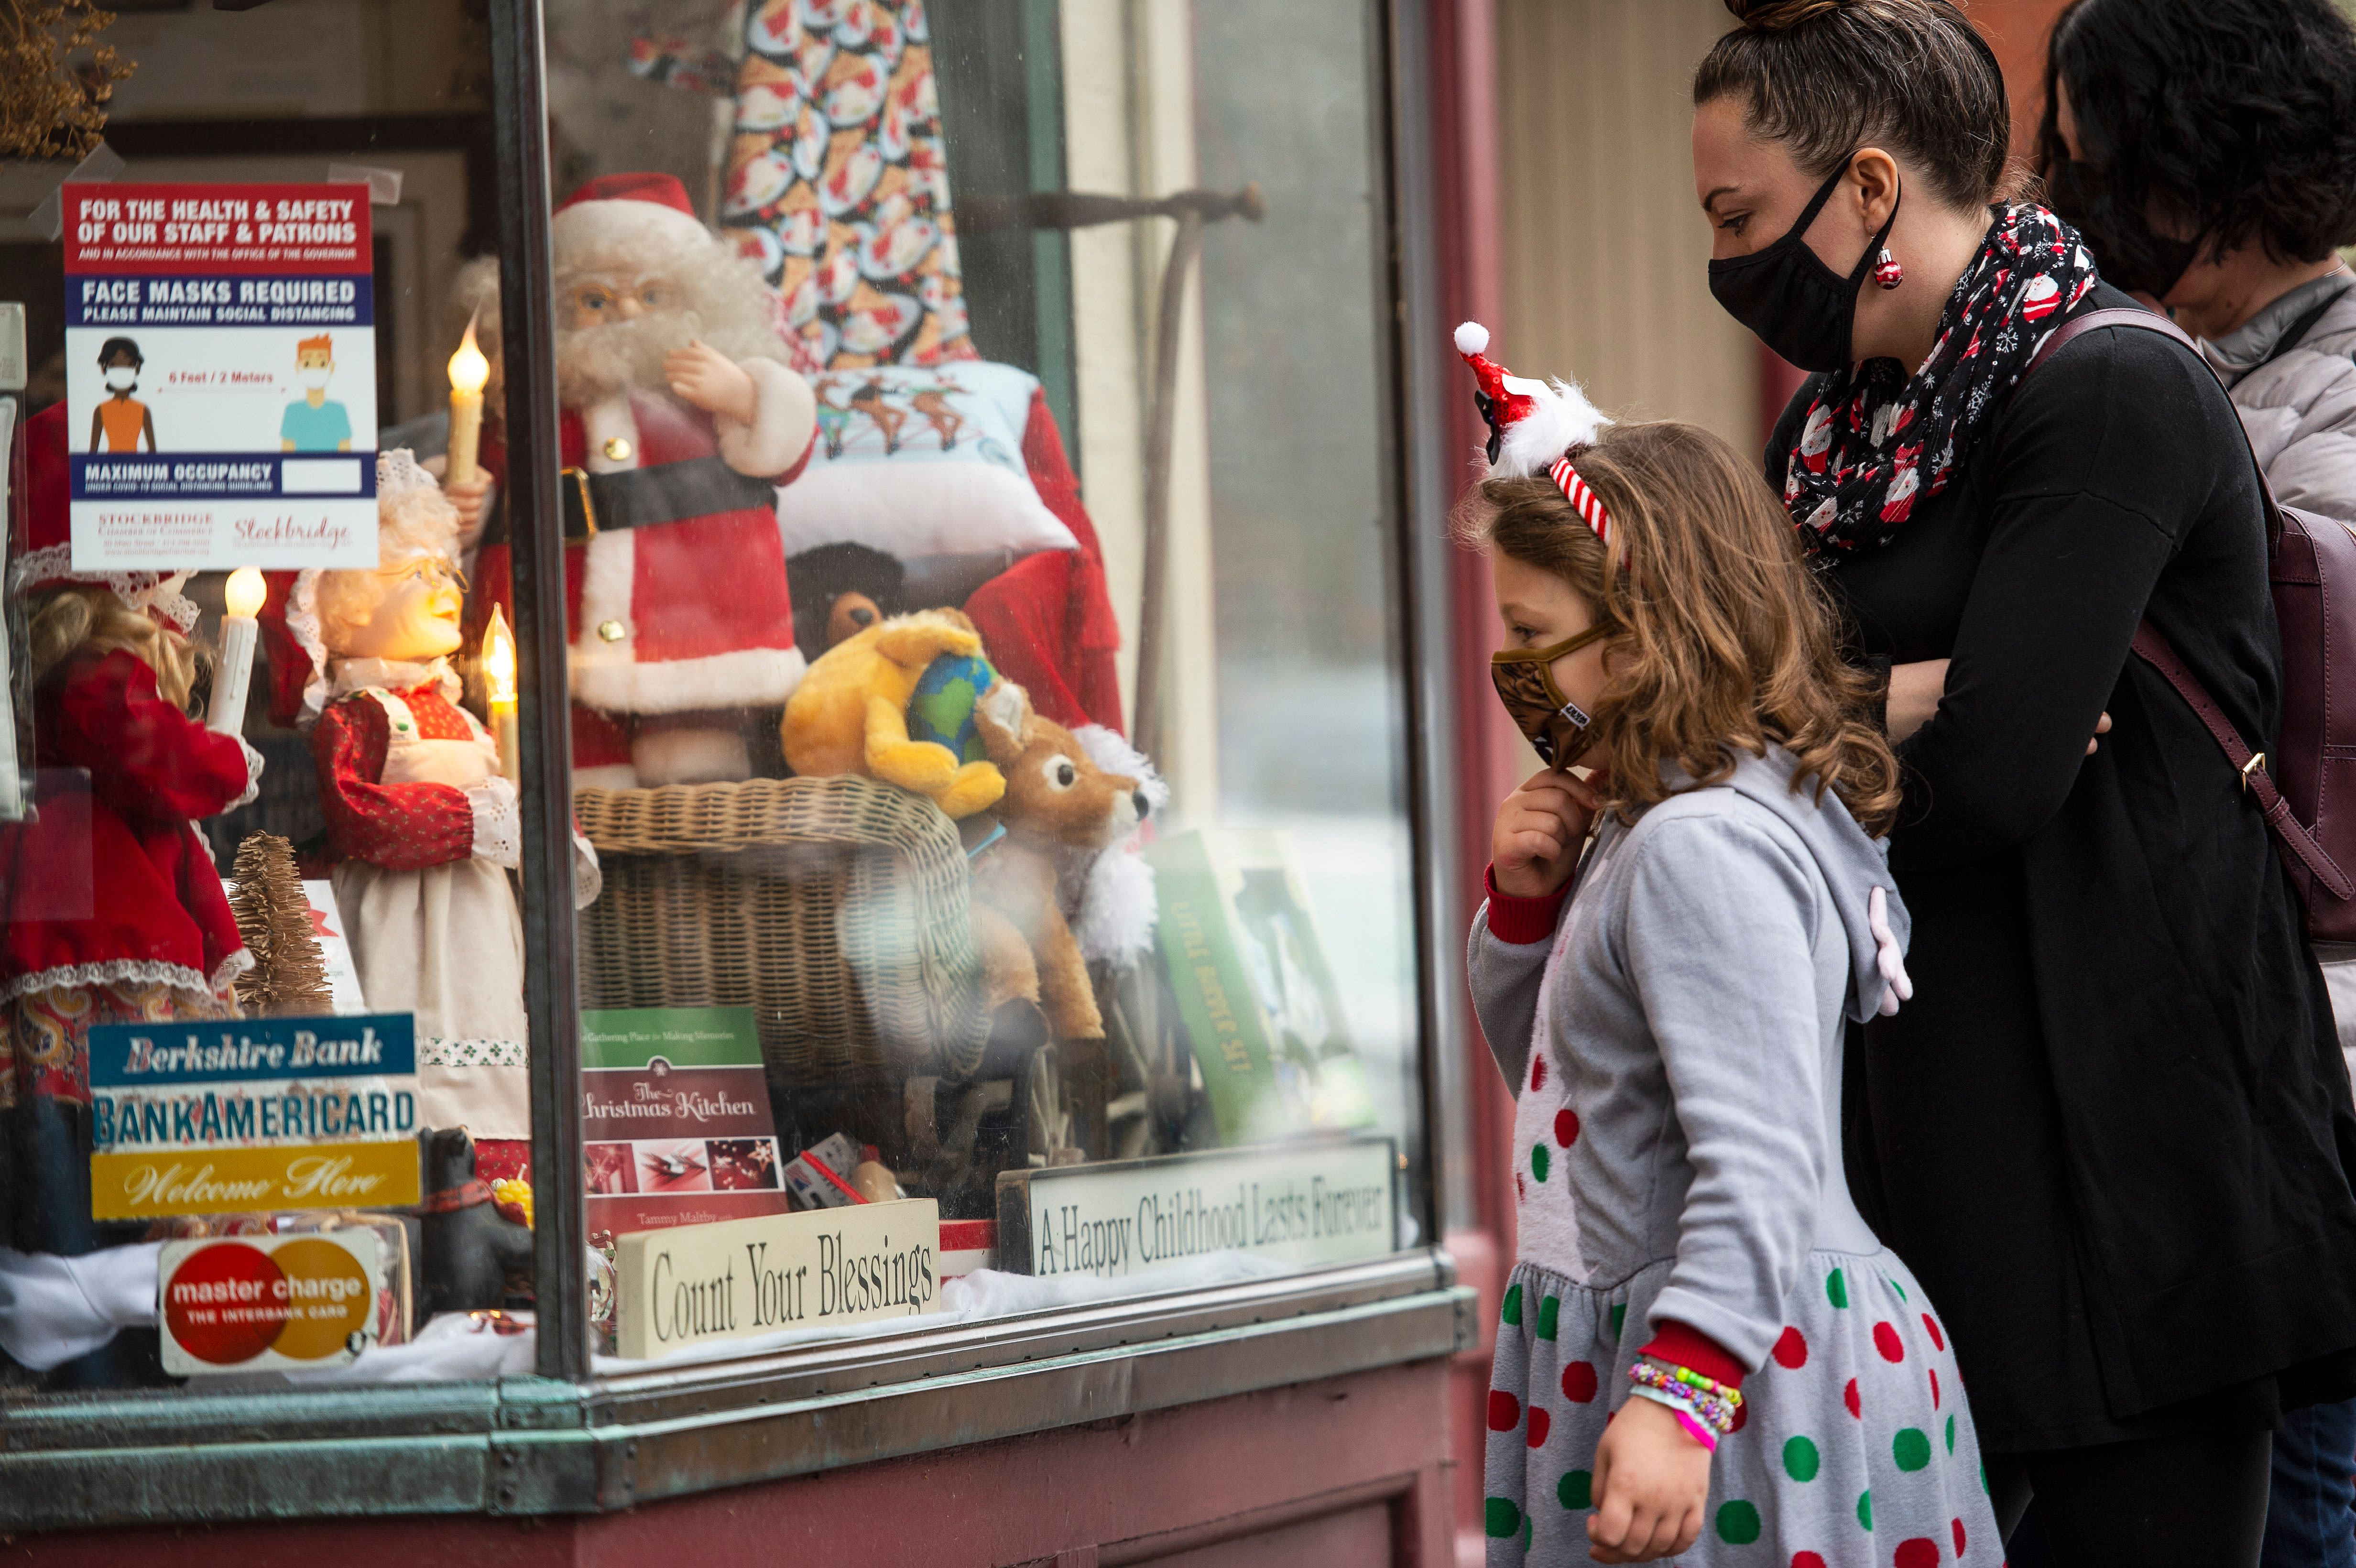 Mad dash to the finish: A record number of people plan to shop the Saturday before Christmas, survey says